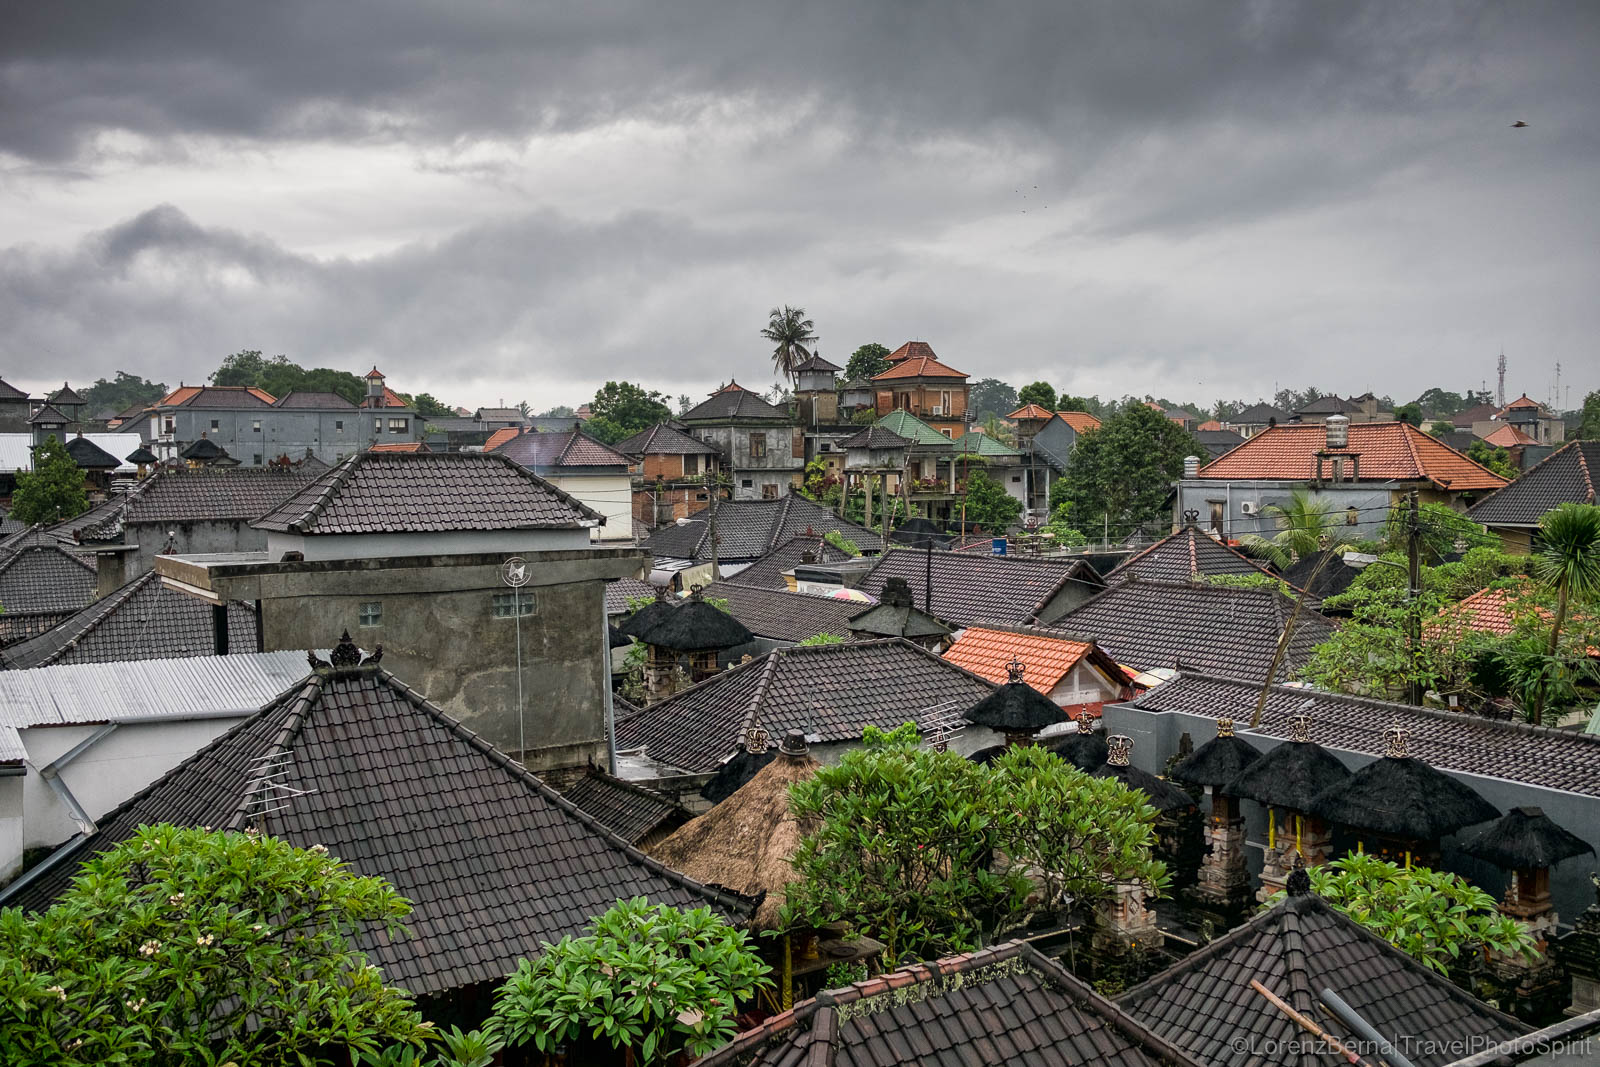 Monsoon sky over Bali's roofs, Indonesia